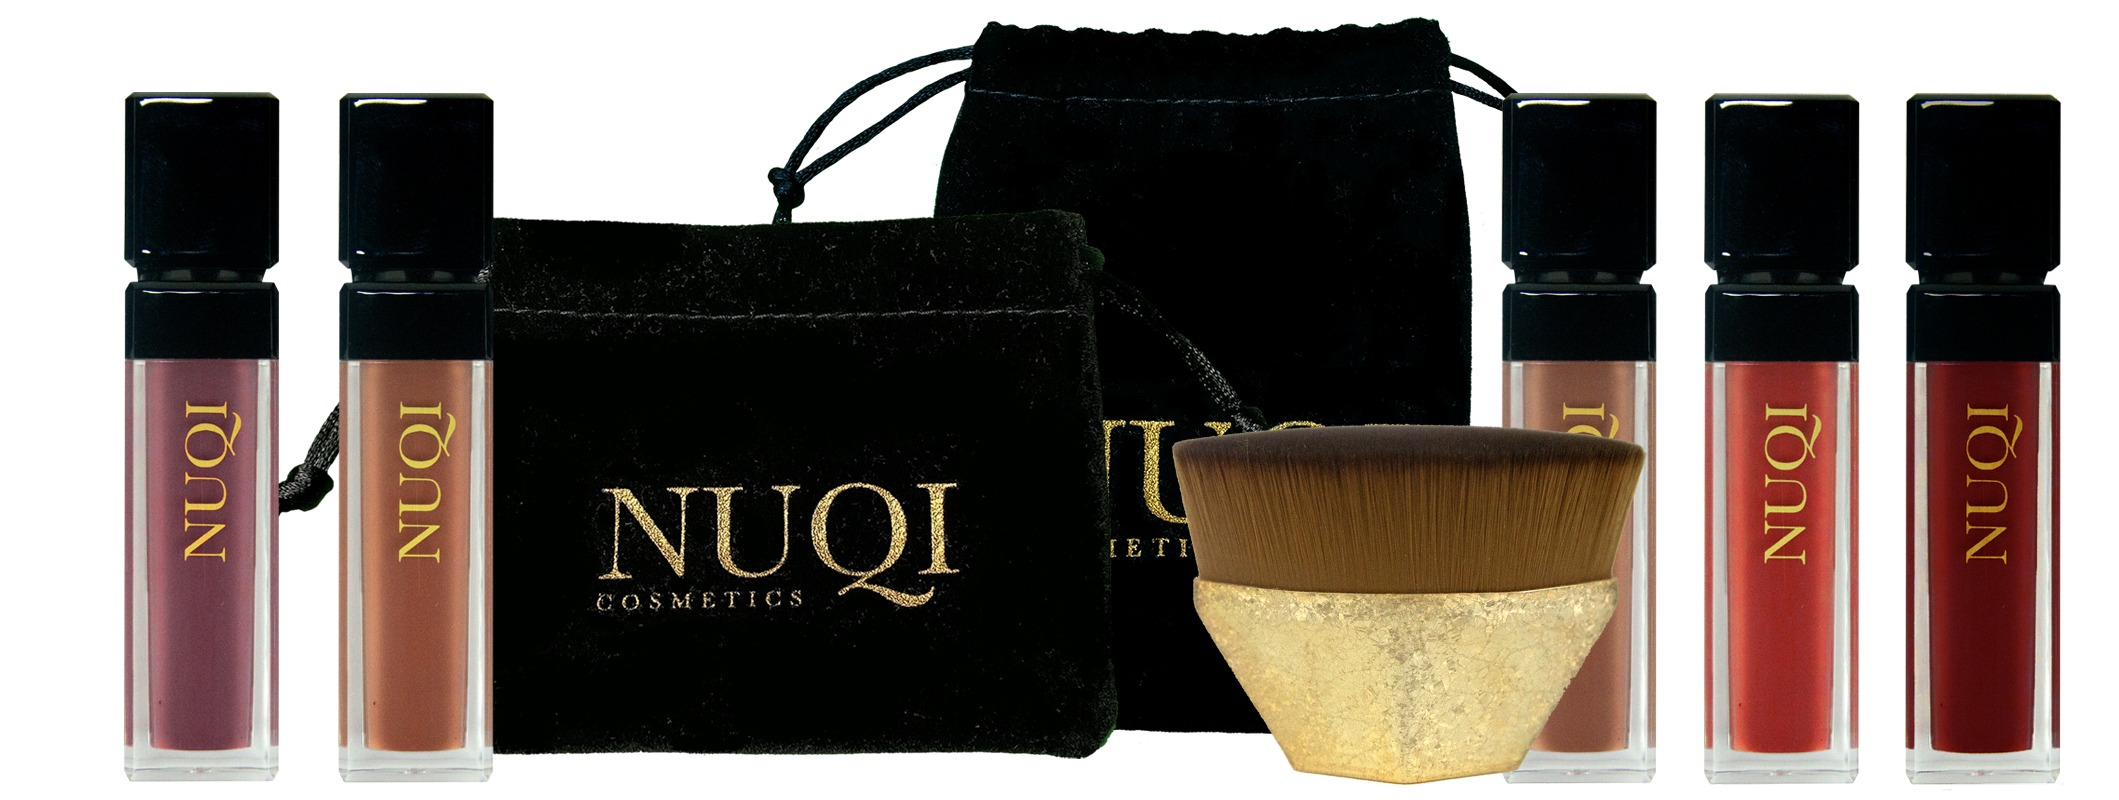 nuqi-pouches-and-items